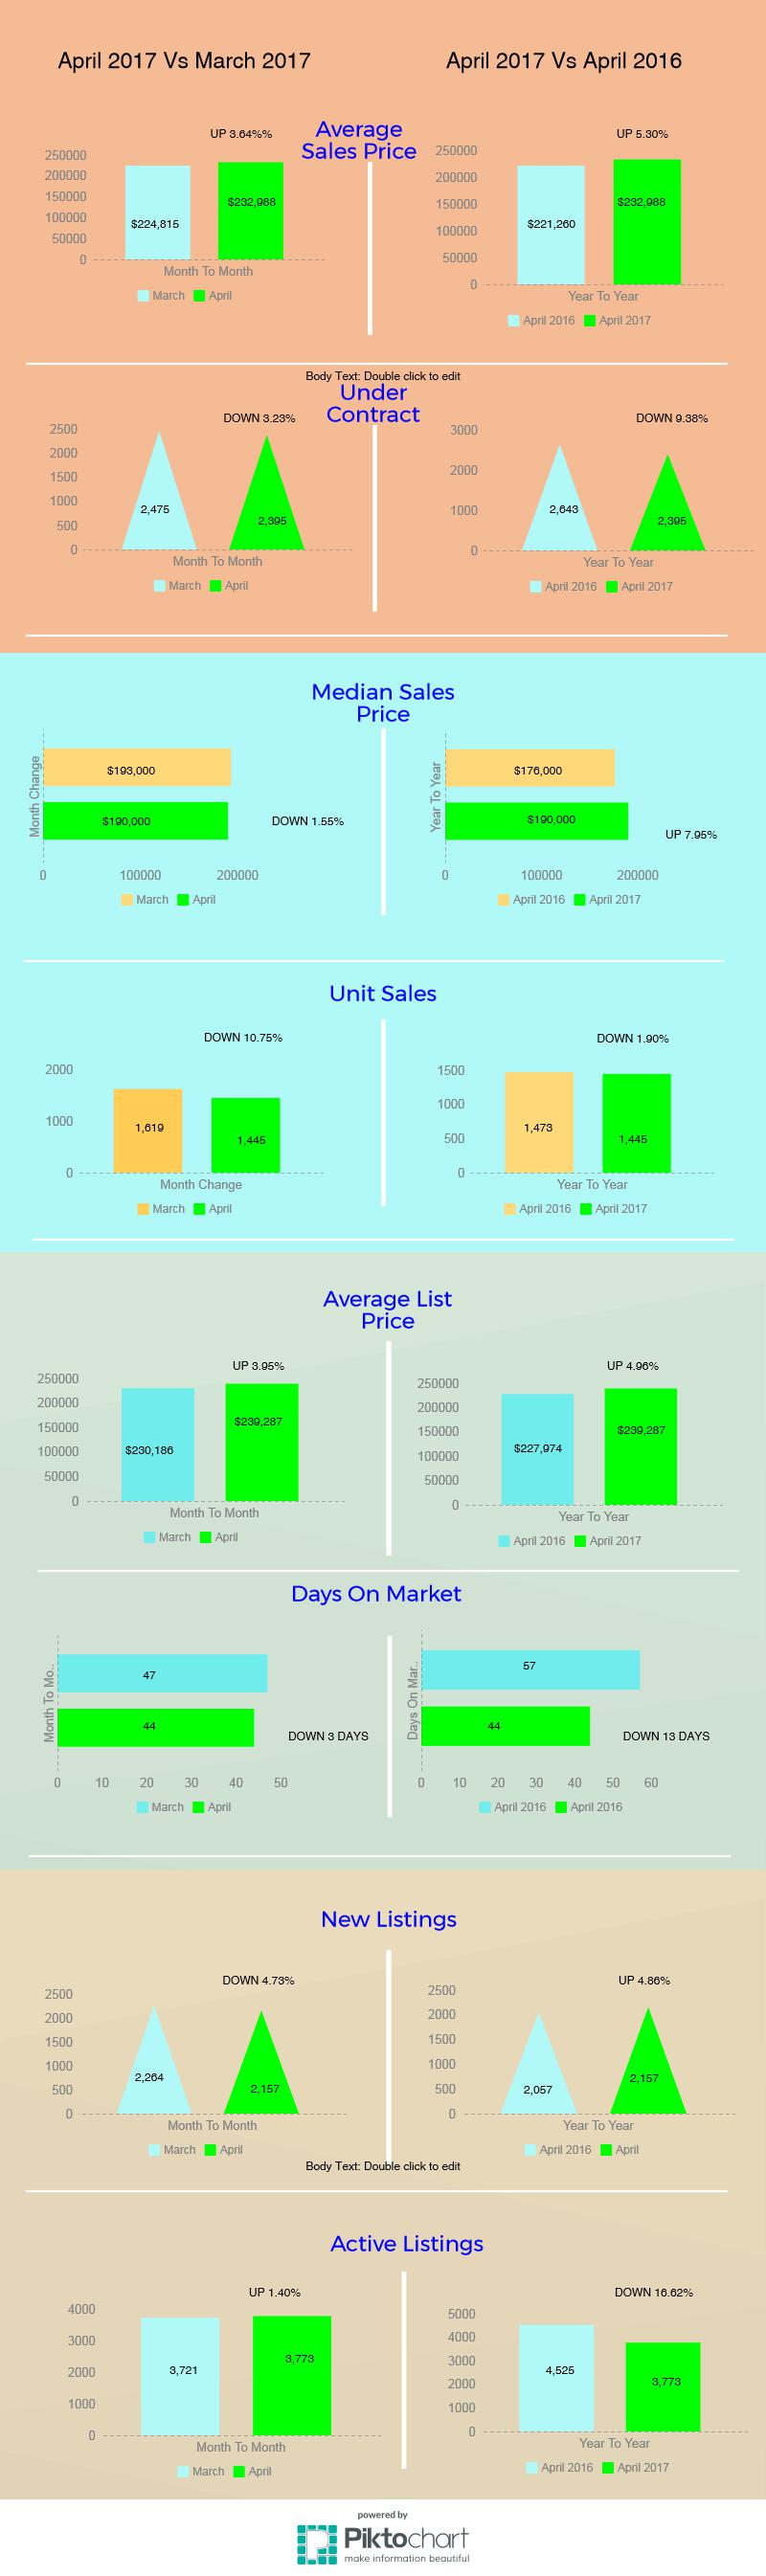 Tucson Housing Market April 2017